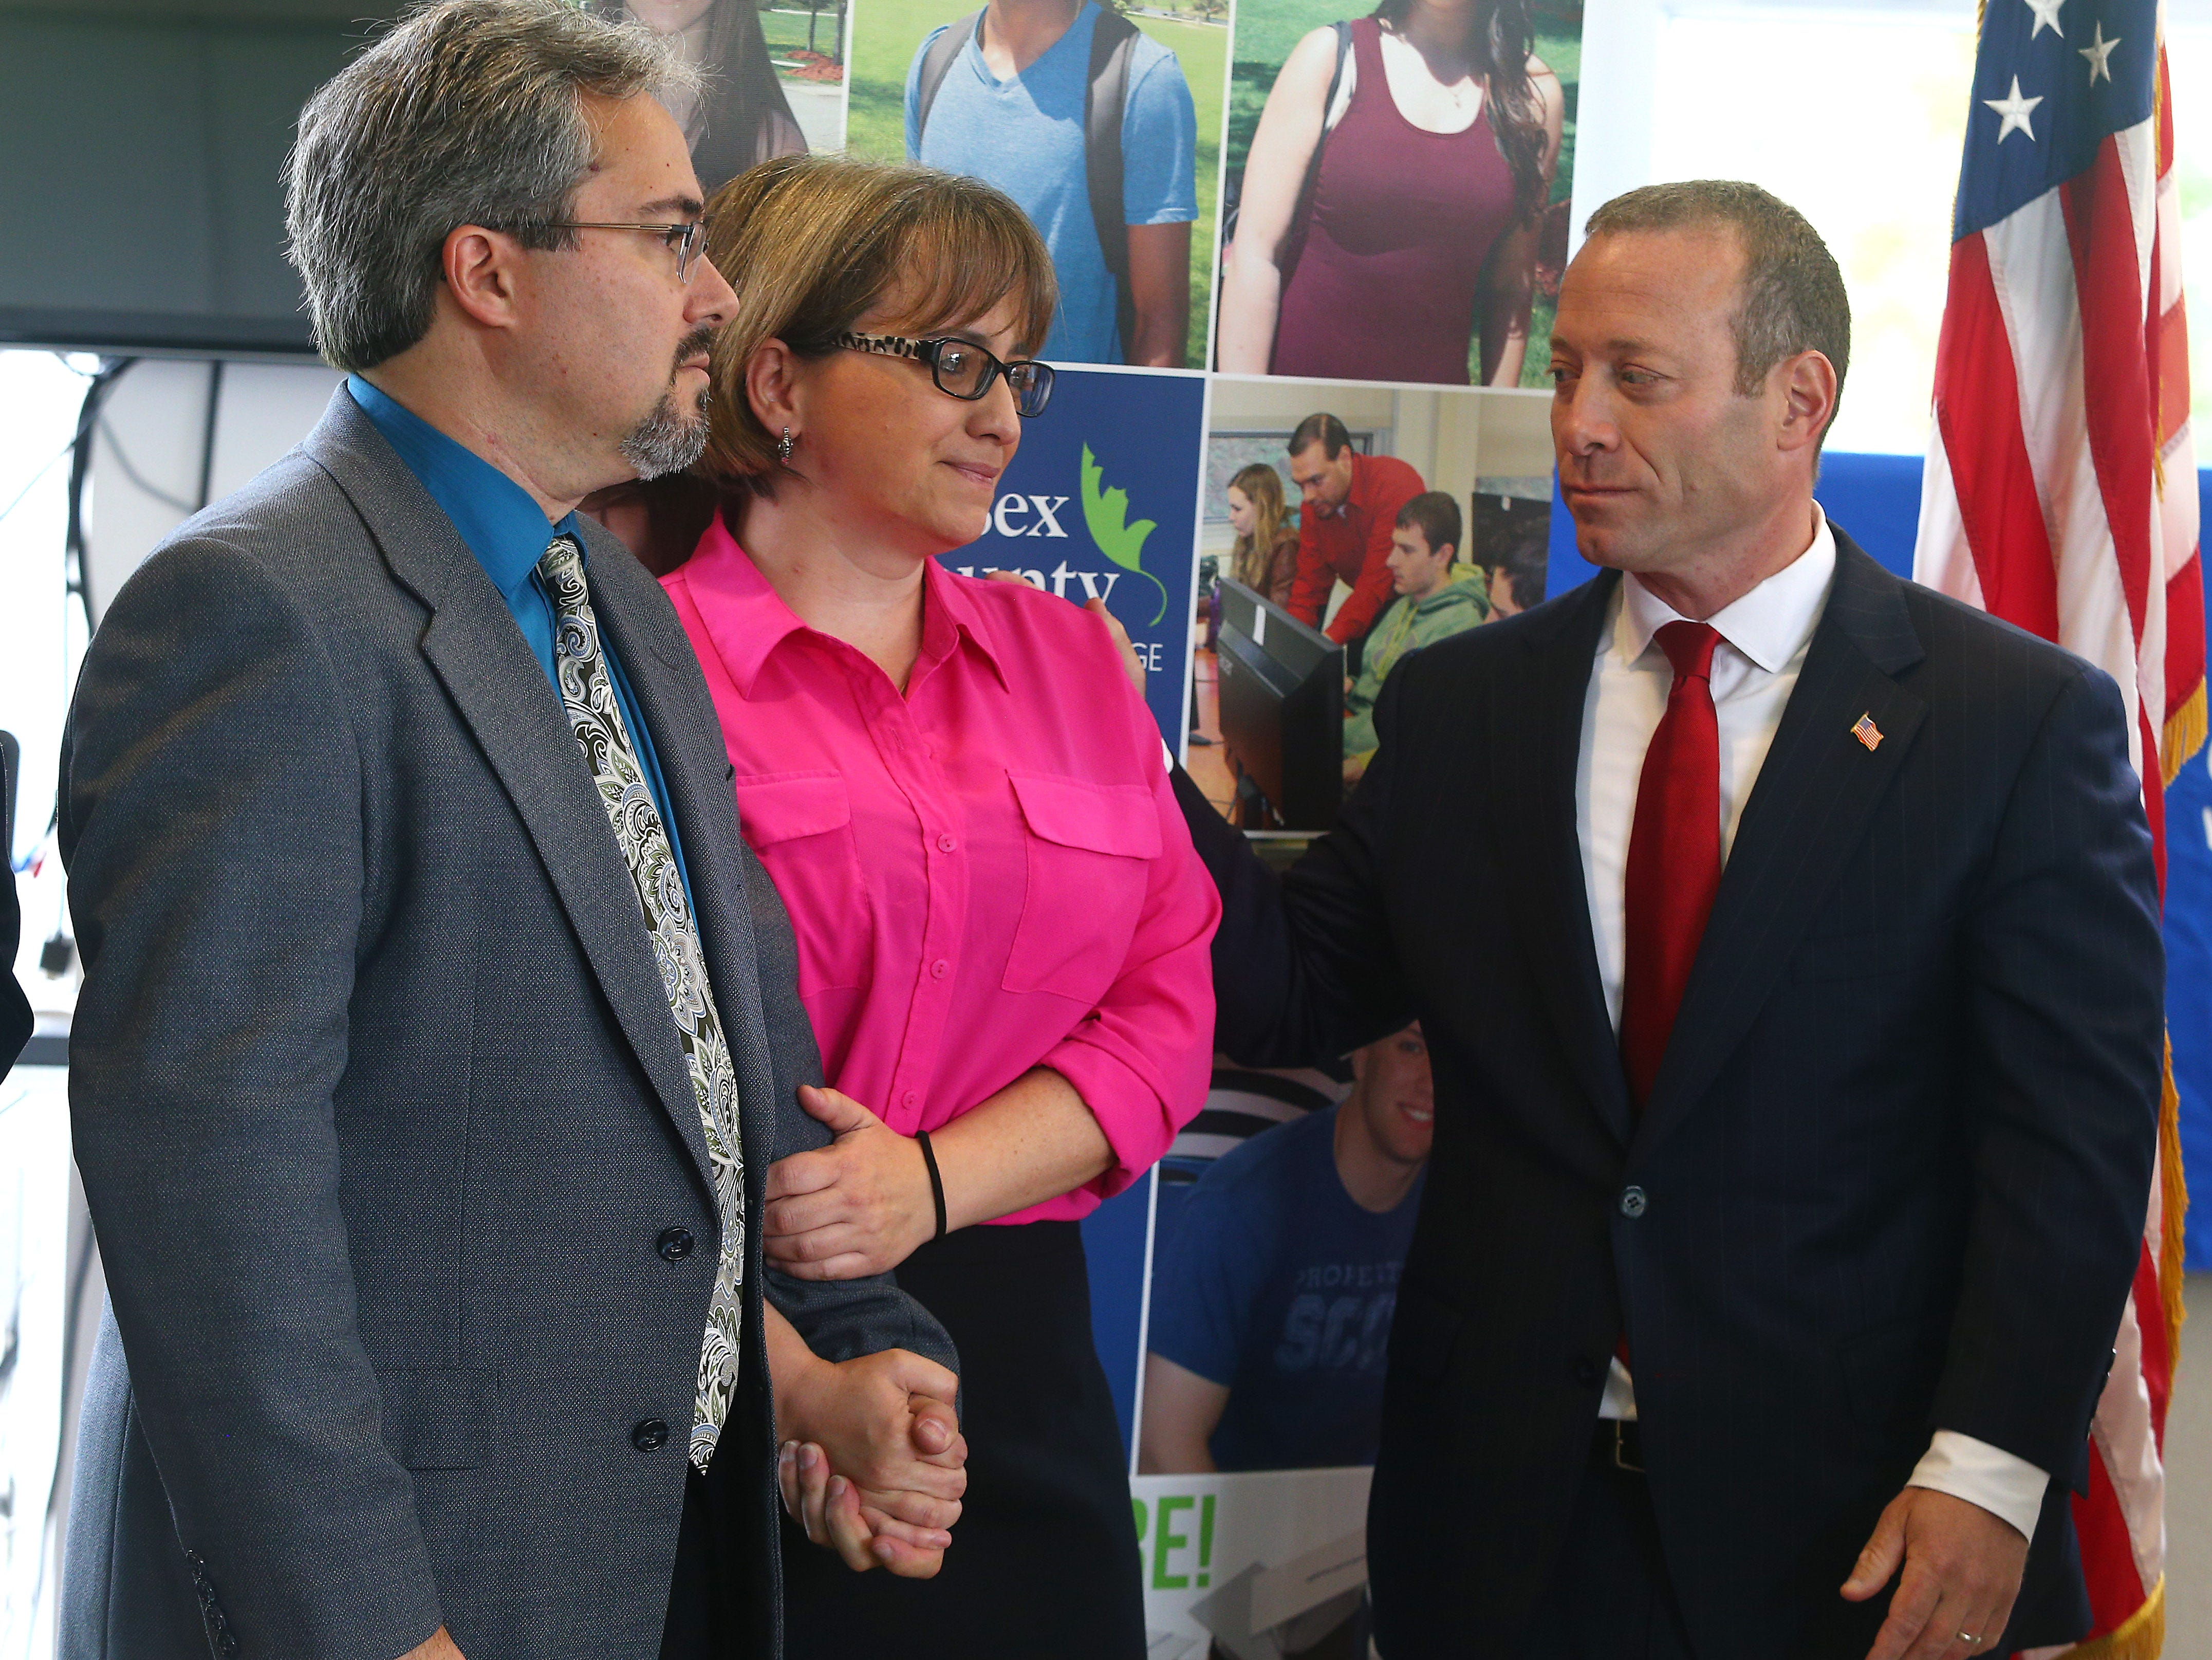 Congressman Josh Gottheimer, r, comforts Colleen Murch as Adam Stolarsky looks on during the Stand United Against Hate rally at the Performing Arts Center of Sussex County Community College. Hampton Township residents Murch and Stolarsky found vulgar graffiti sprayed on the road in front of their residence. This followed an incident last weekend in which a vandal spray-painted a swastika on their garage and a campaign sign for Rep. Josh Gottheimer. October 2, 2018, Newton, NJ